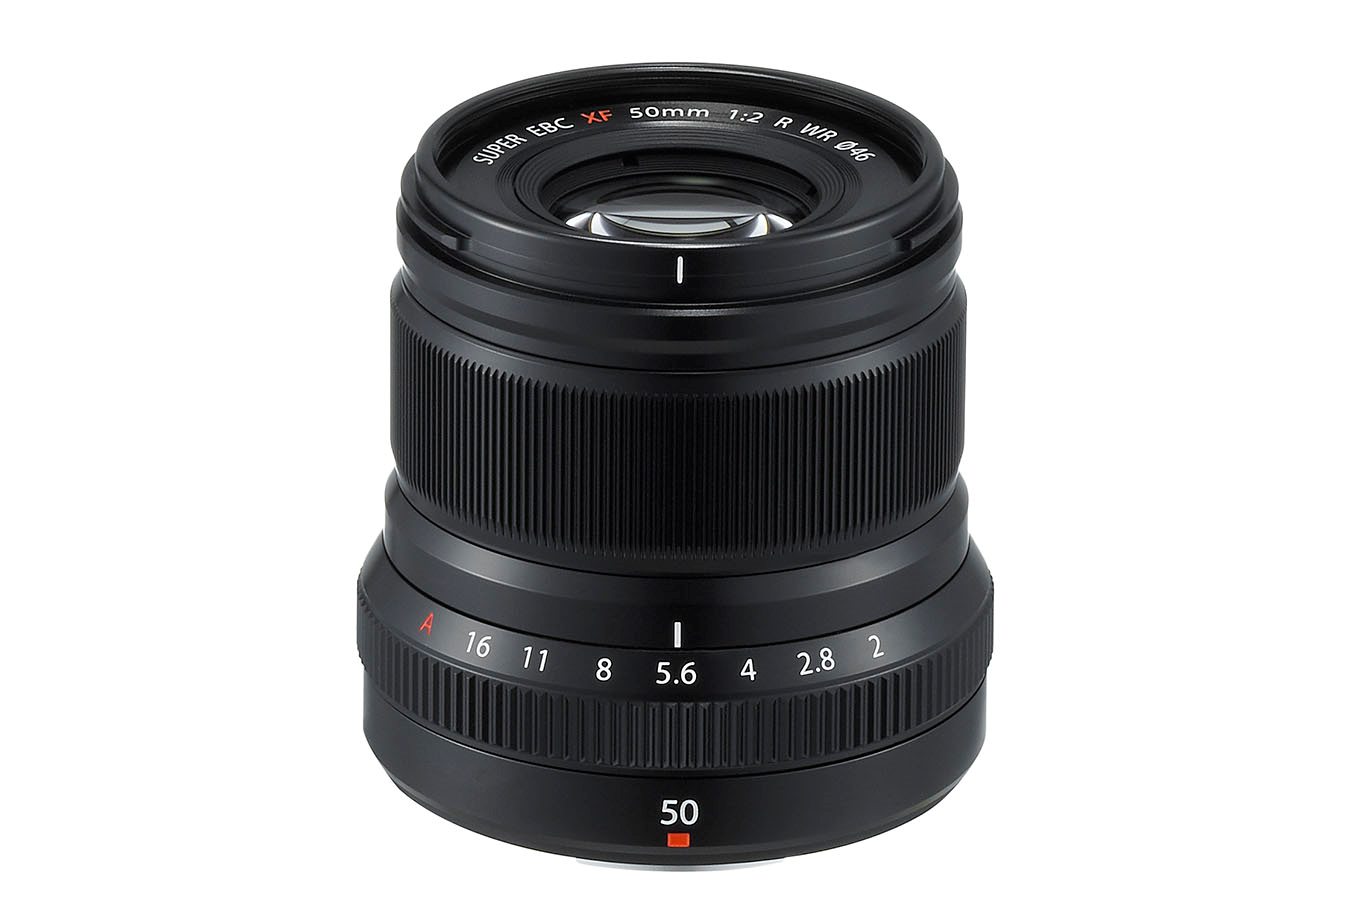 Fujifilm XF50mm f/2 R WR fixed